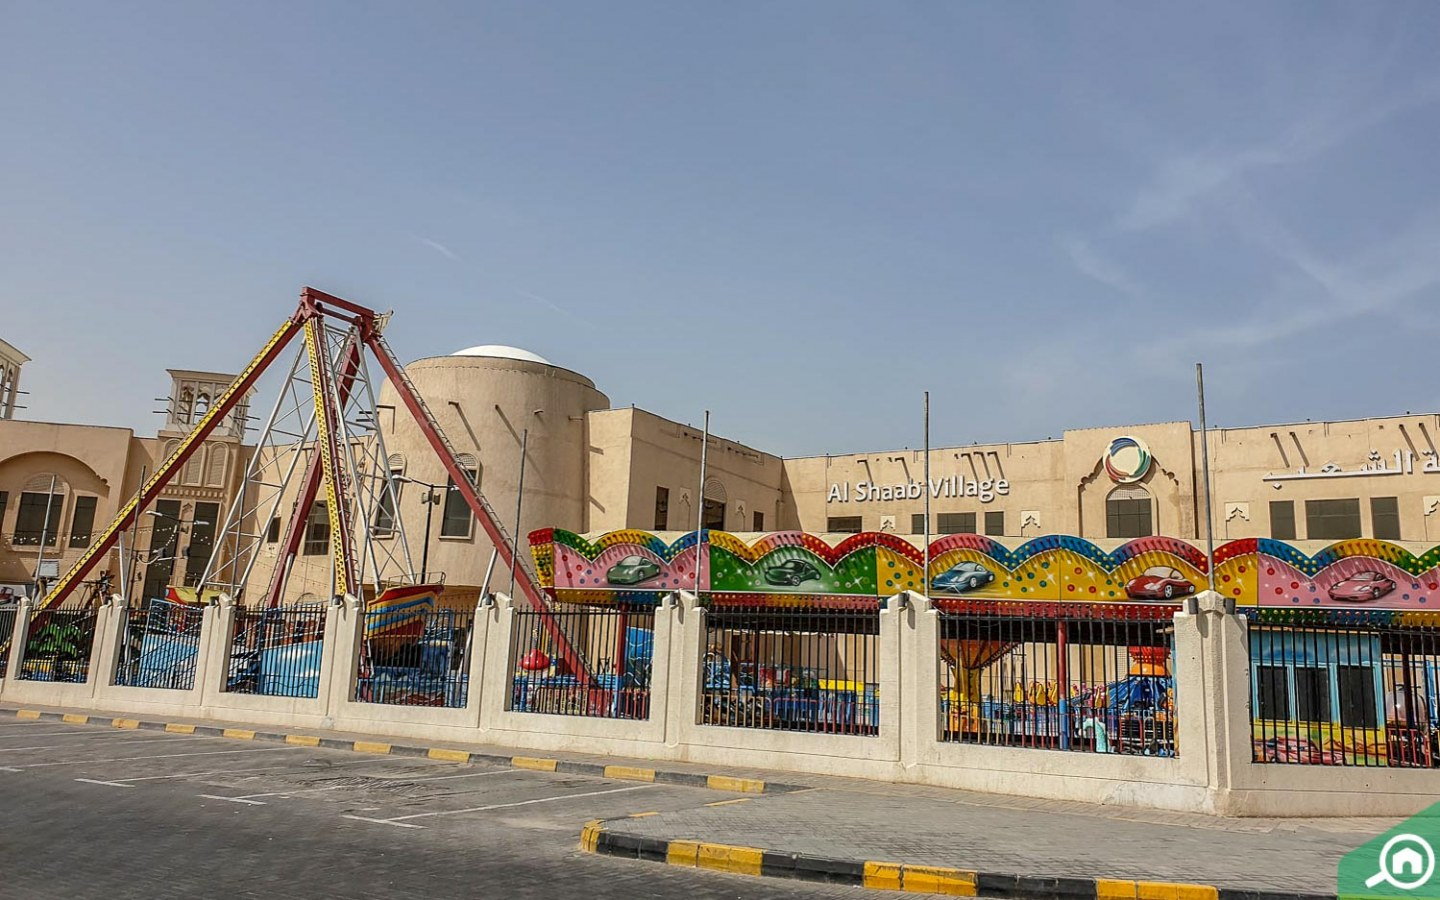 Al Shaab Village in Al Sabkha